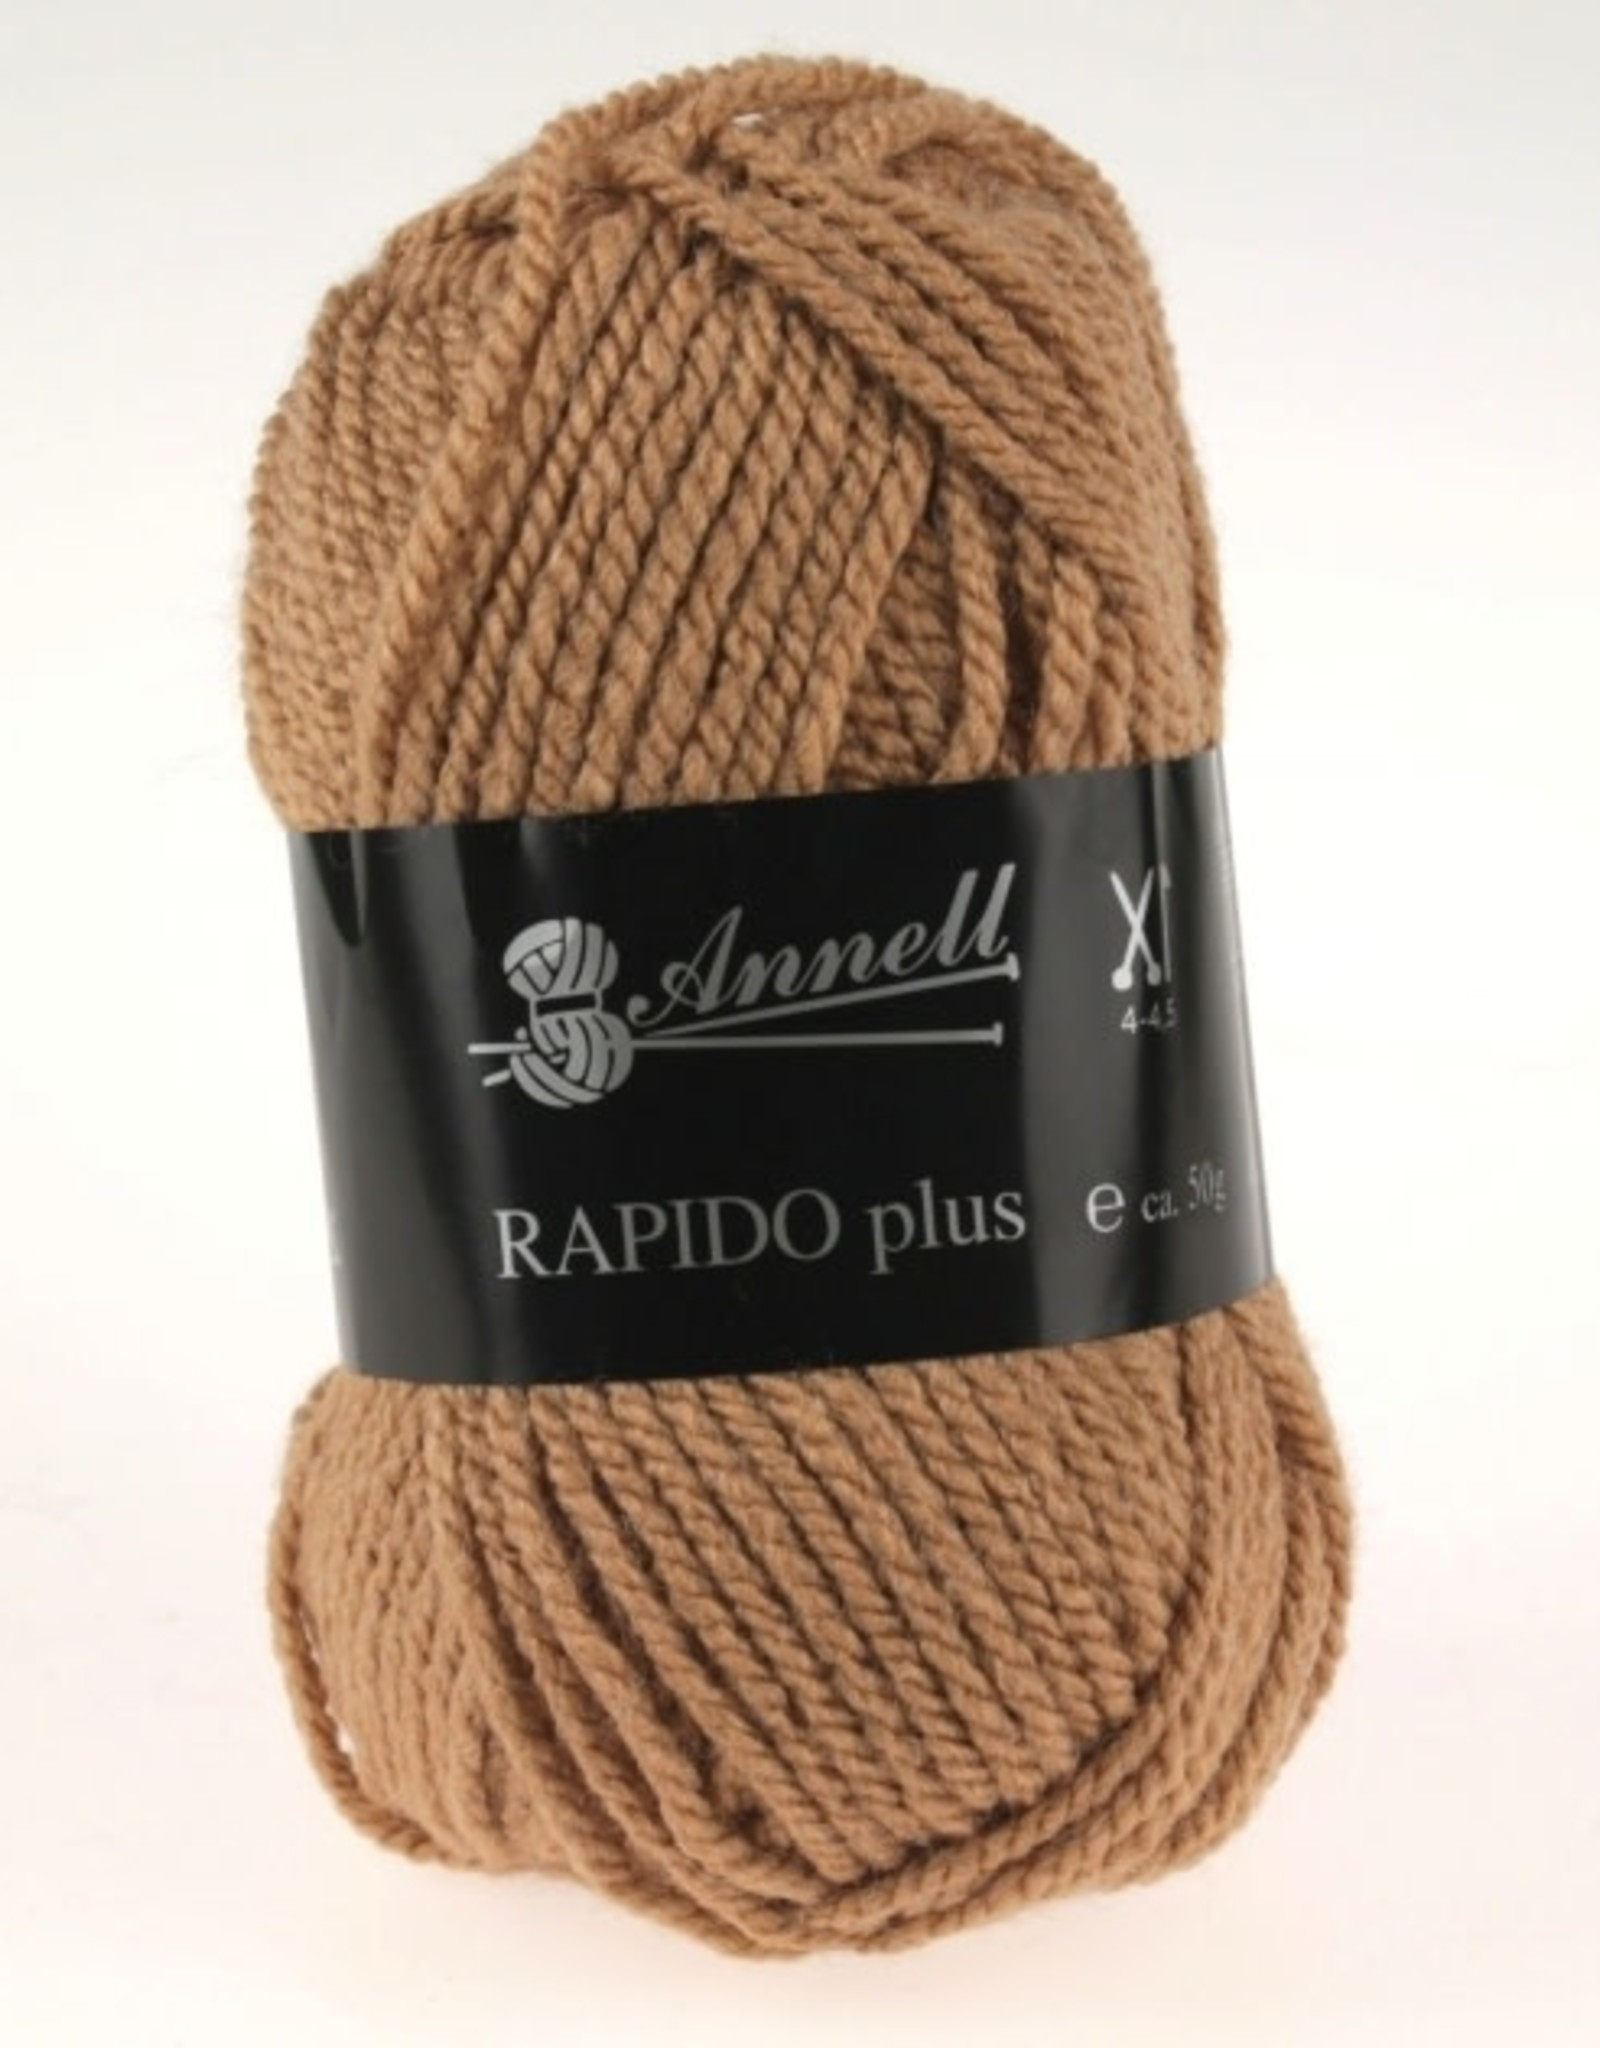 Annell Annell rapido plus 9228